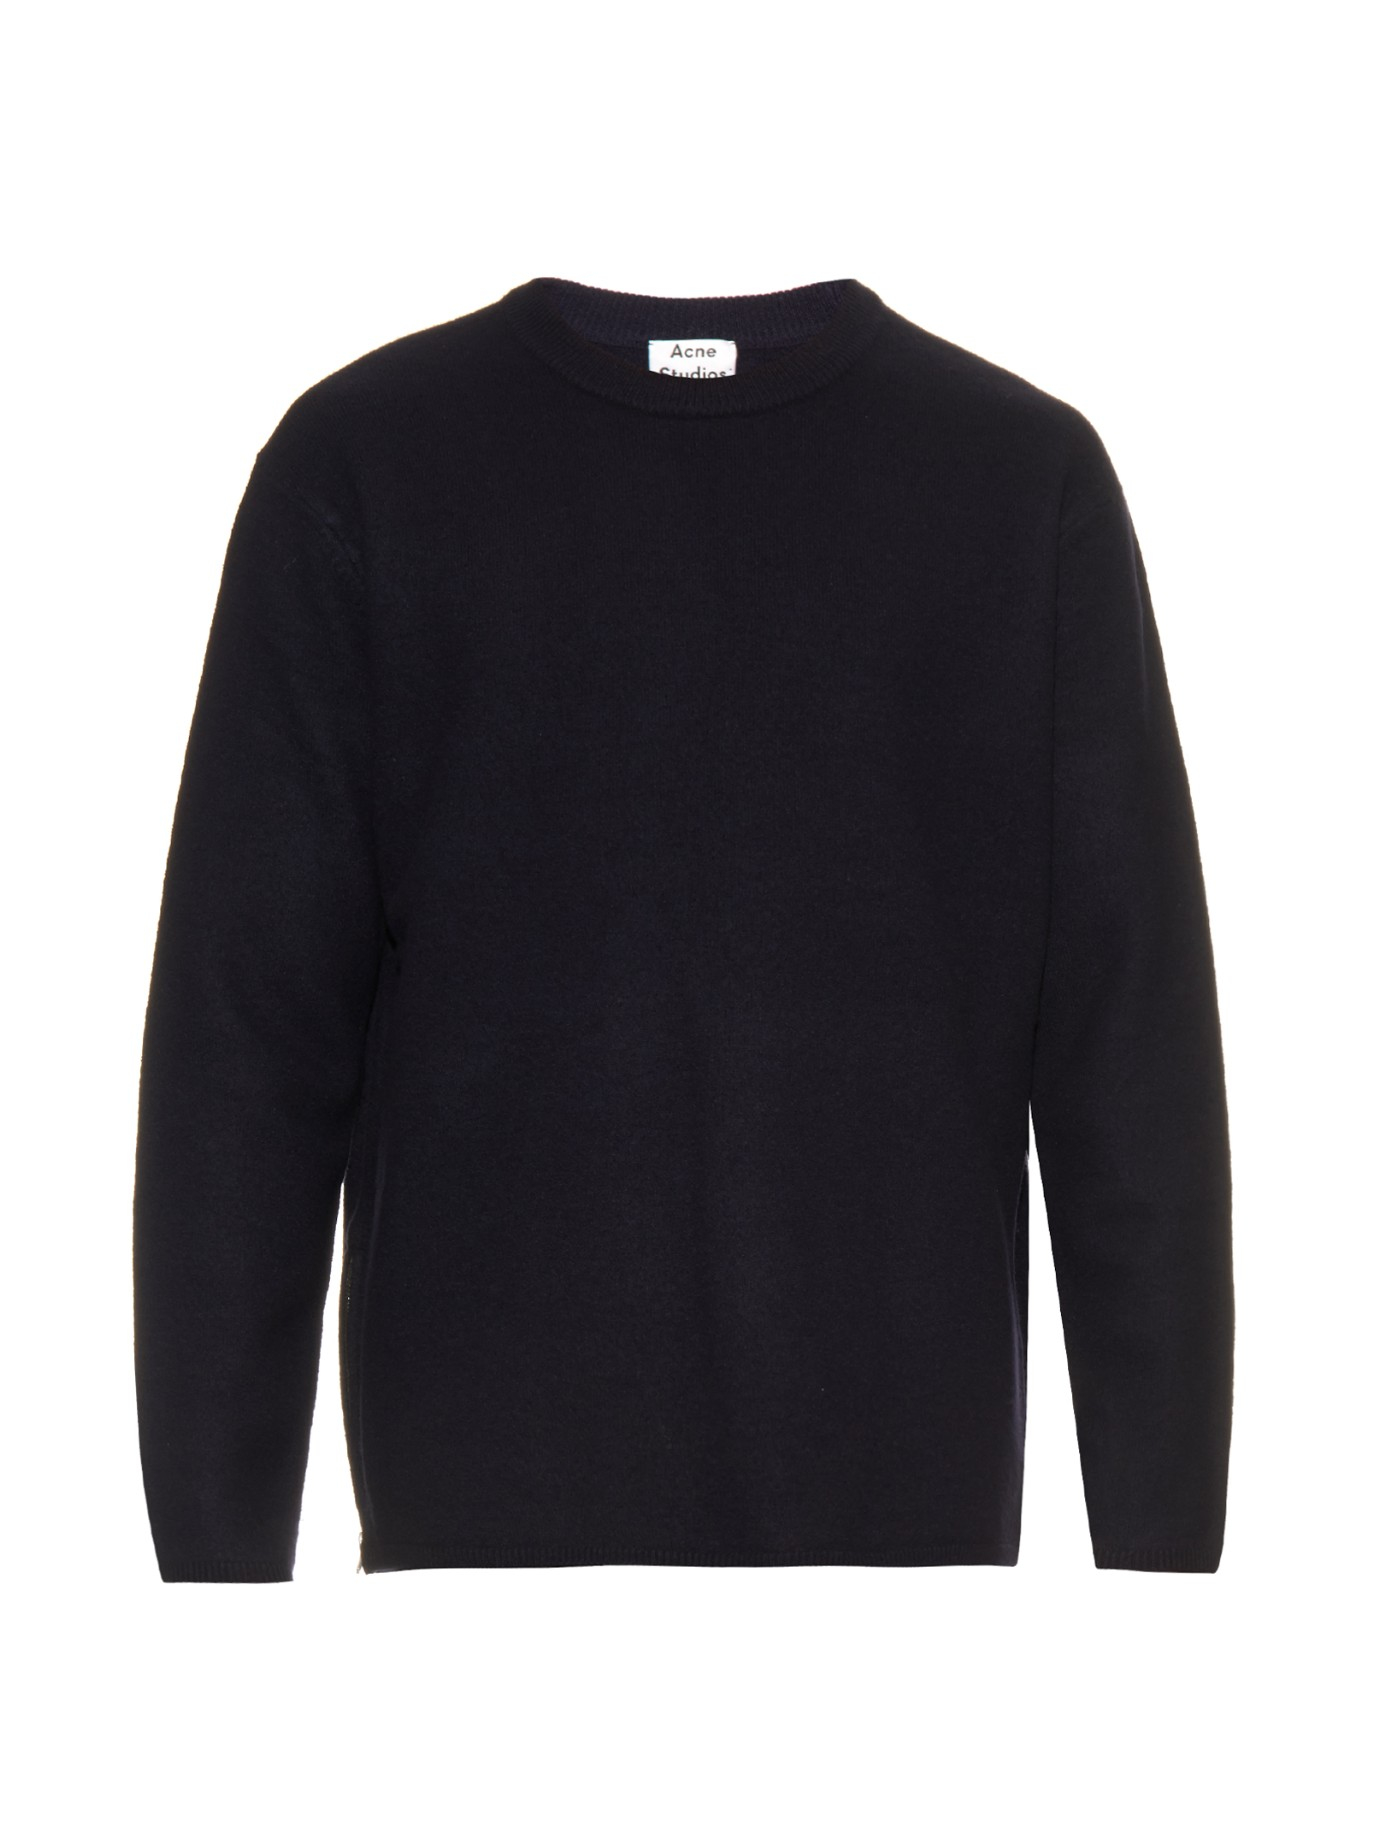 acne studios micha sweater in blue for men lyst. Black Bedroom Furniture Sets. Home Design Ideas